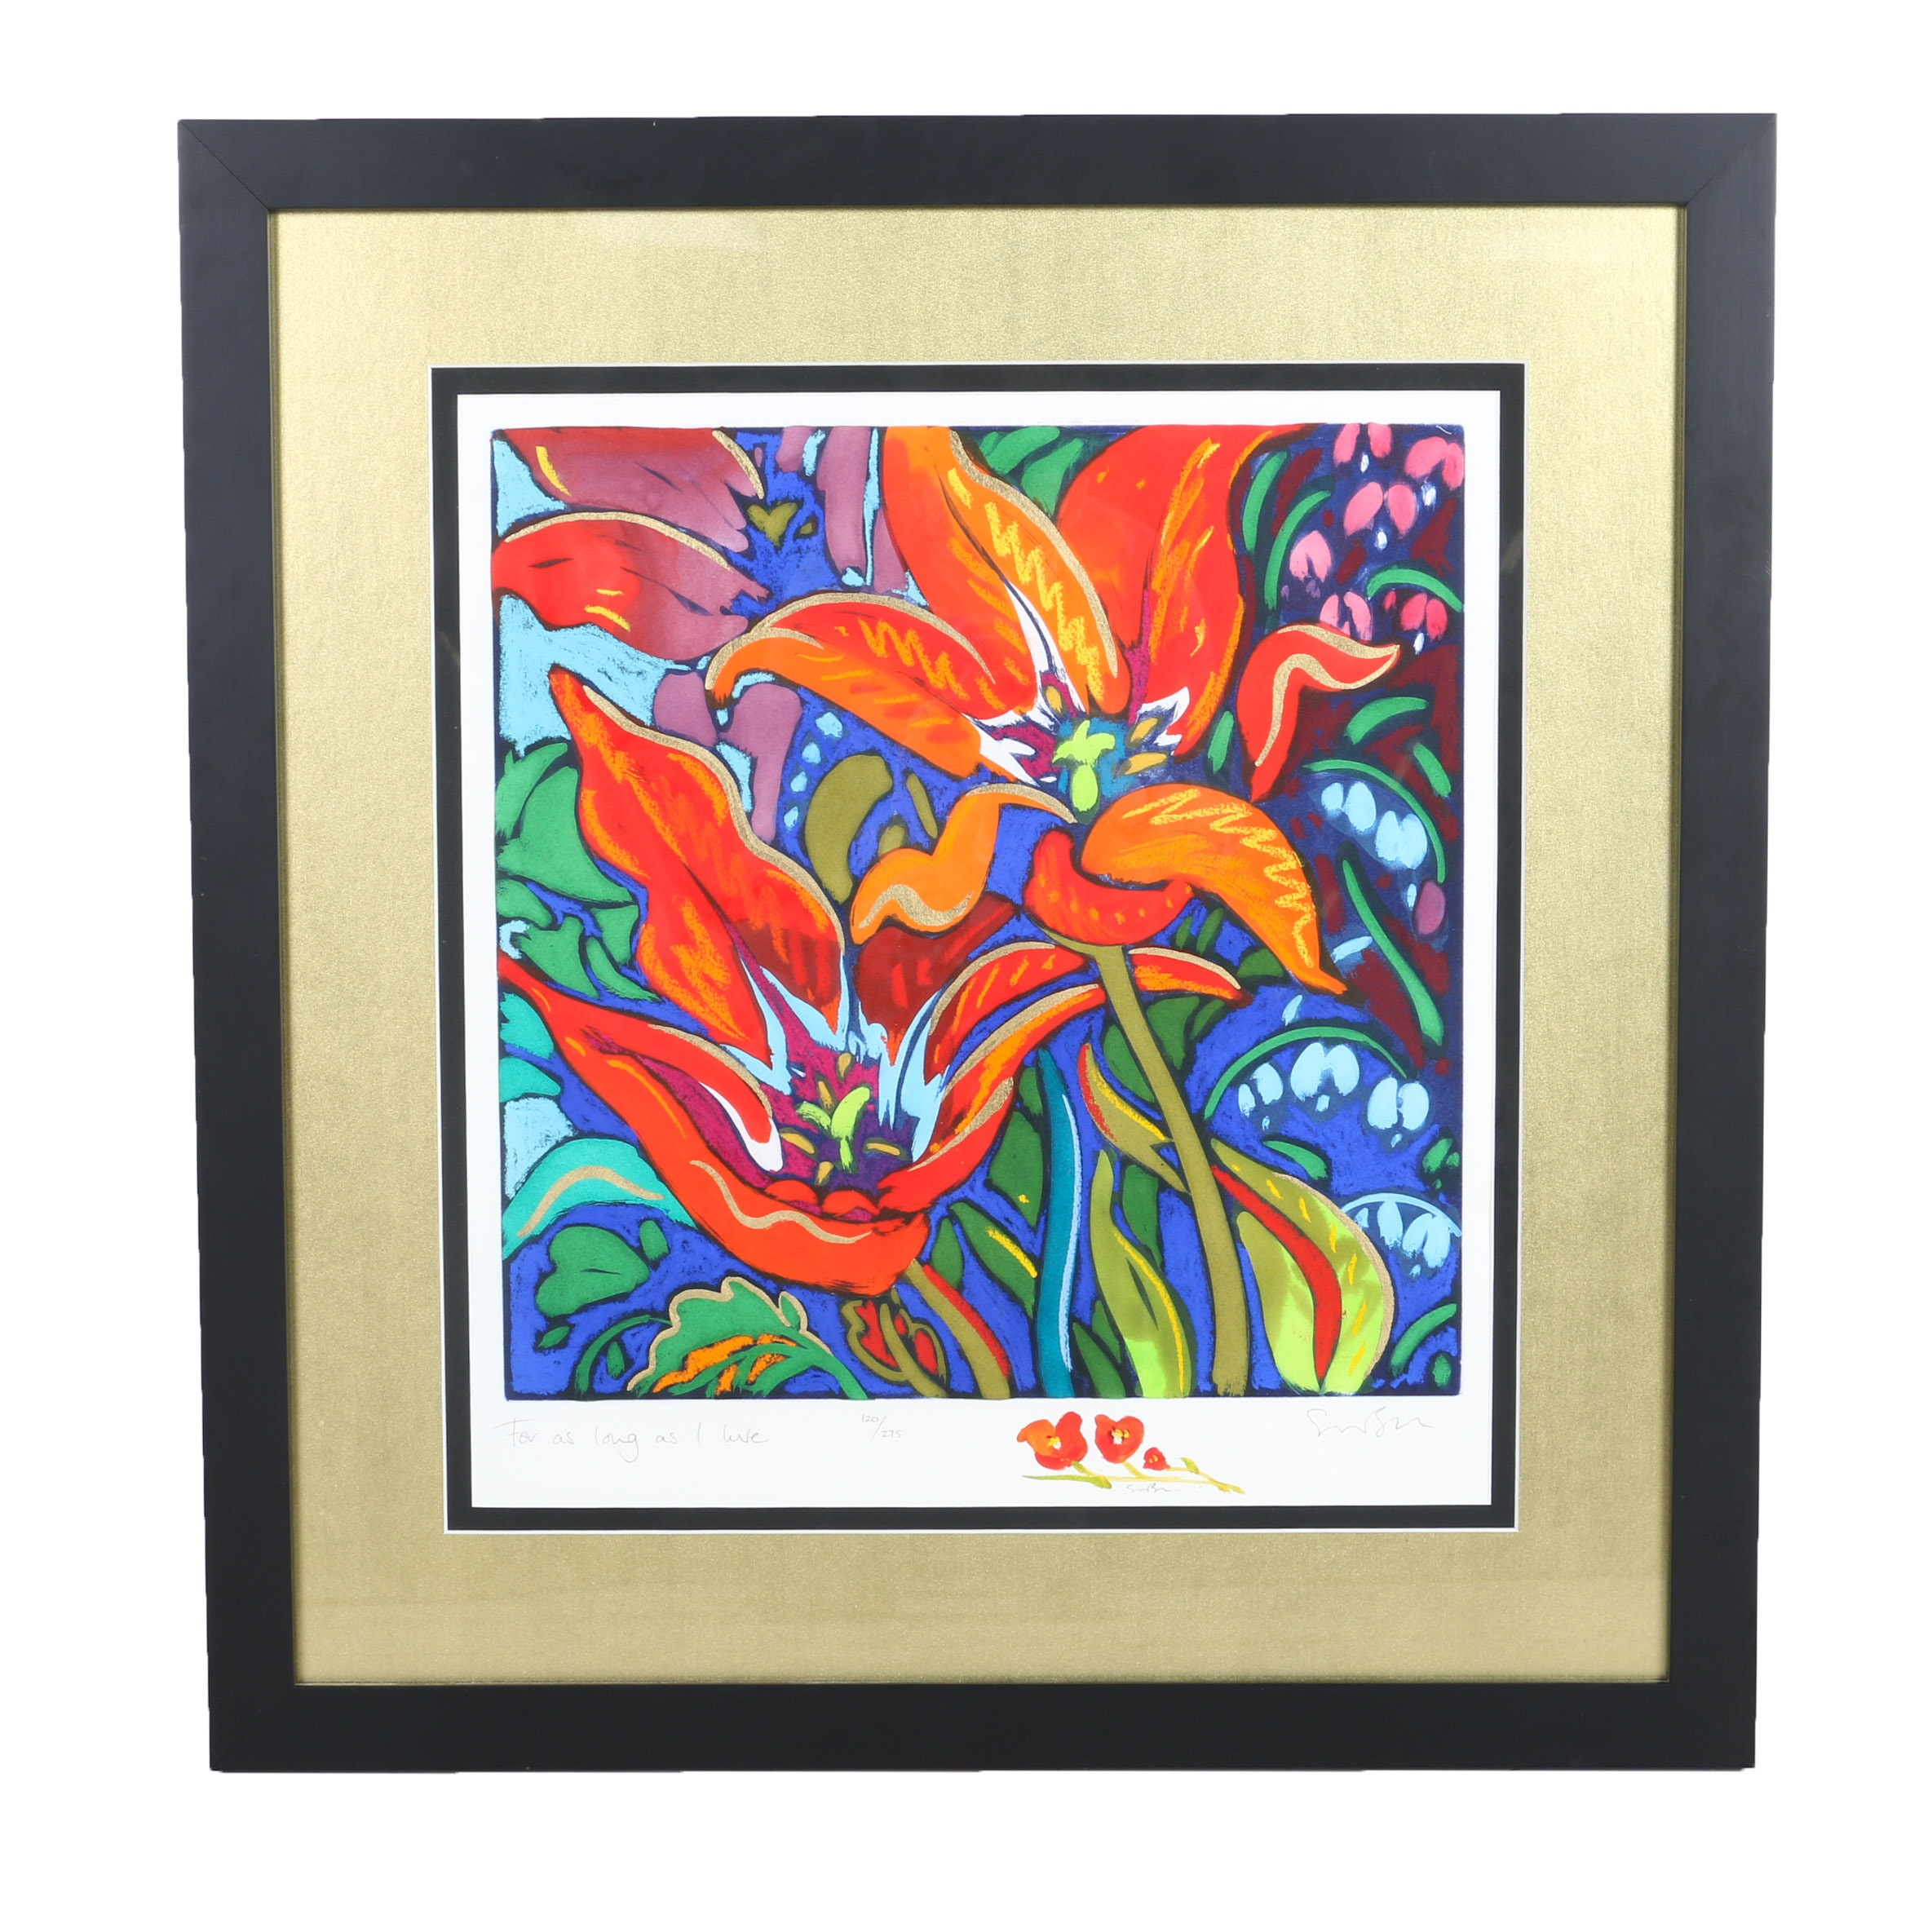 Limited Edition Mixed Media Print on Paper of Lilies